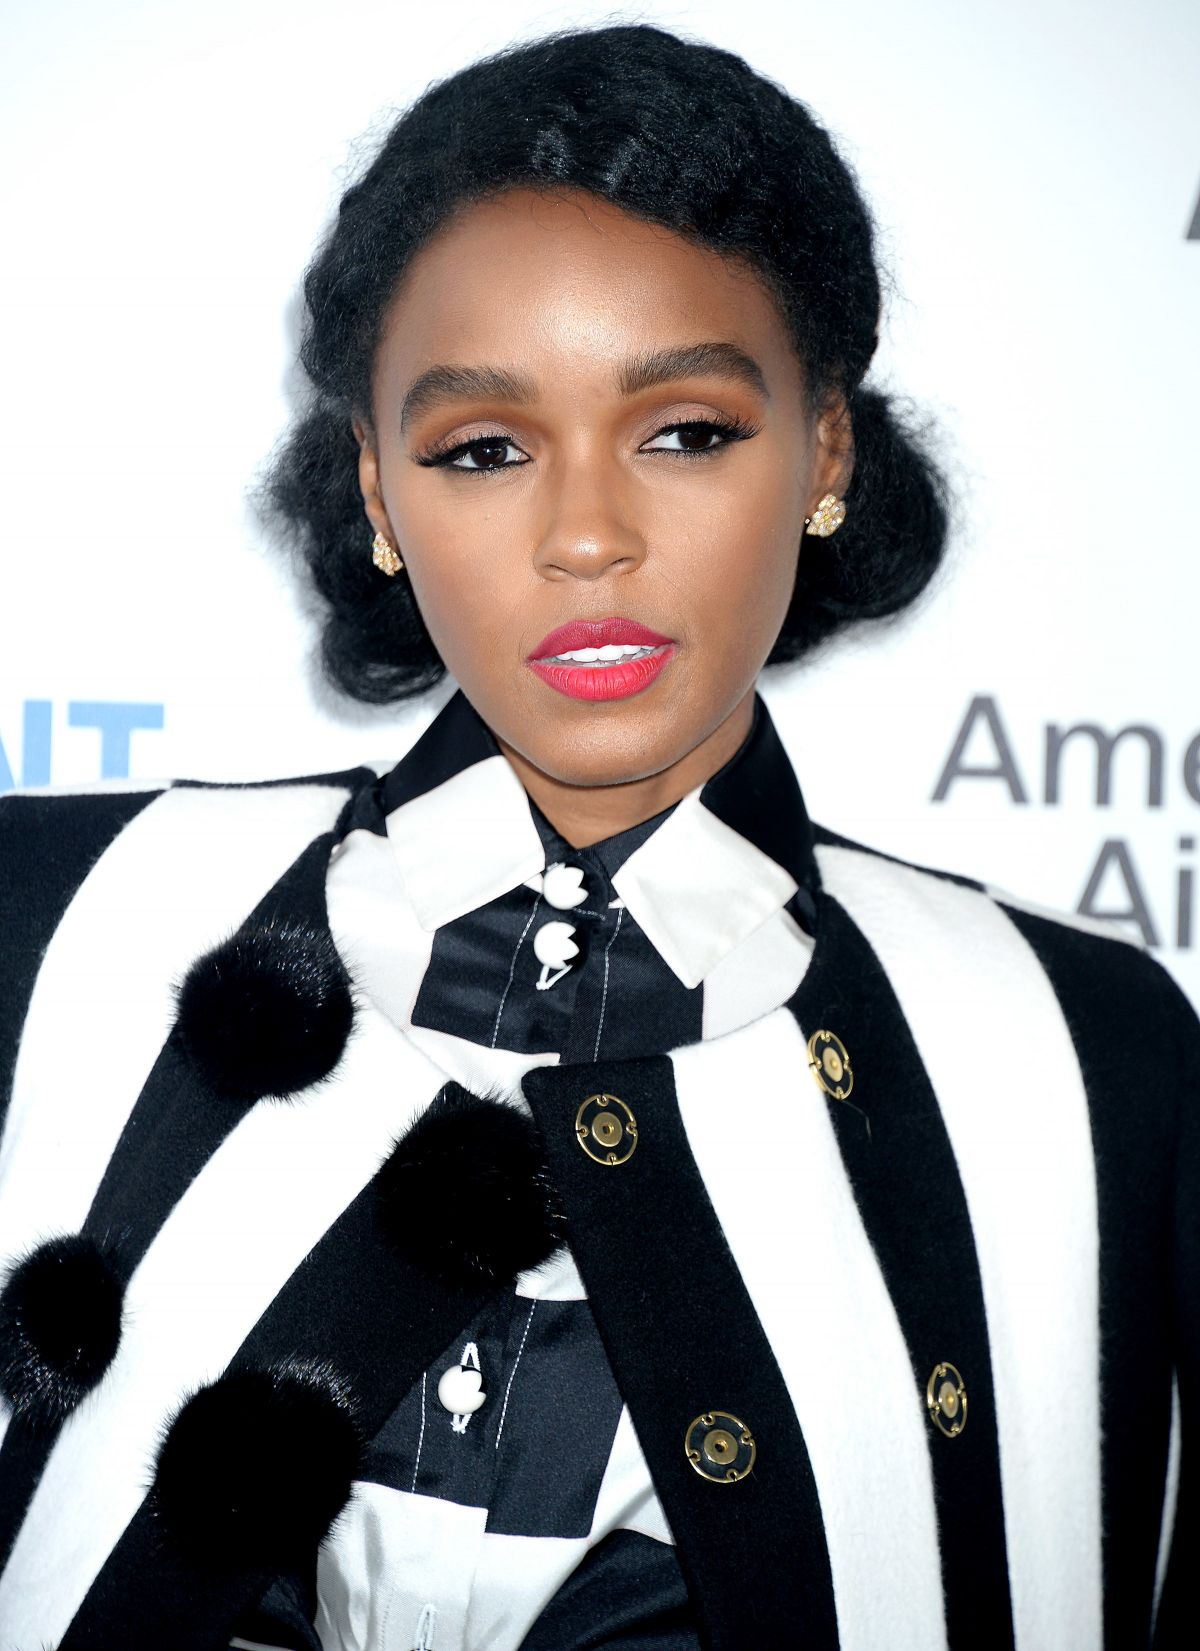 JANELLE MONAE at 2017 Film Independent Spirit Awards in Santa Monica 02/25/2017